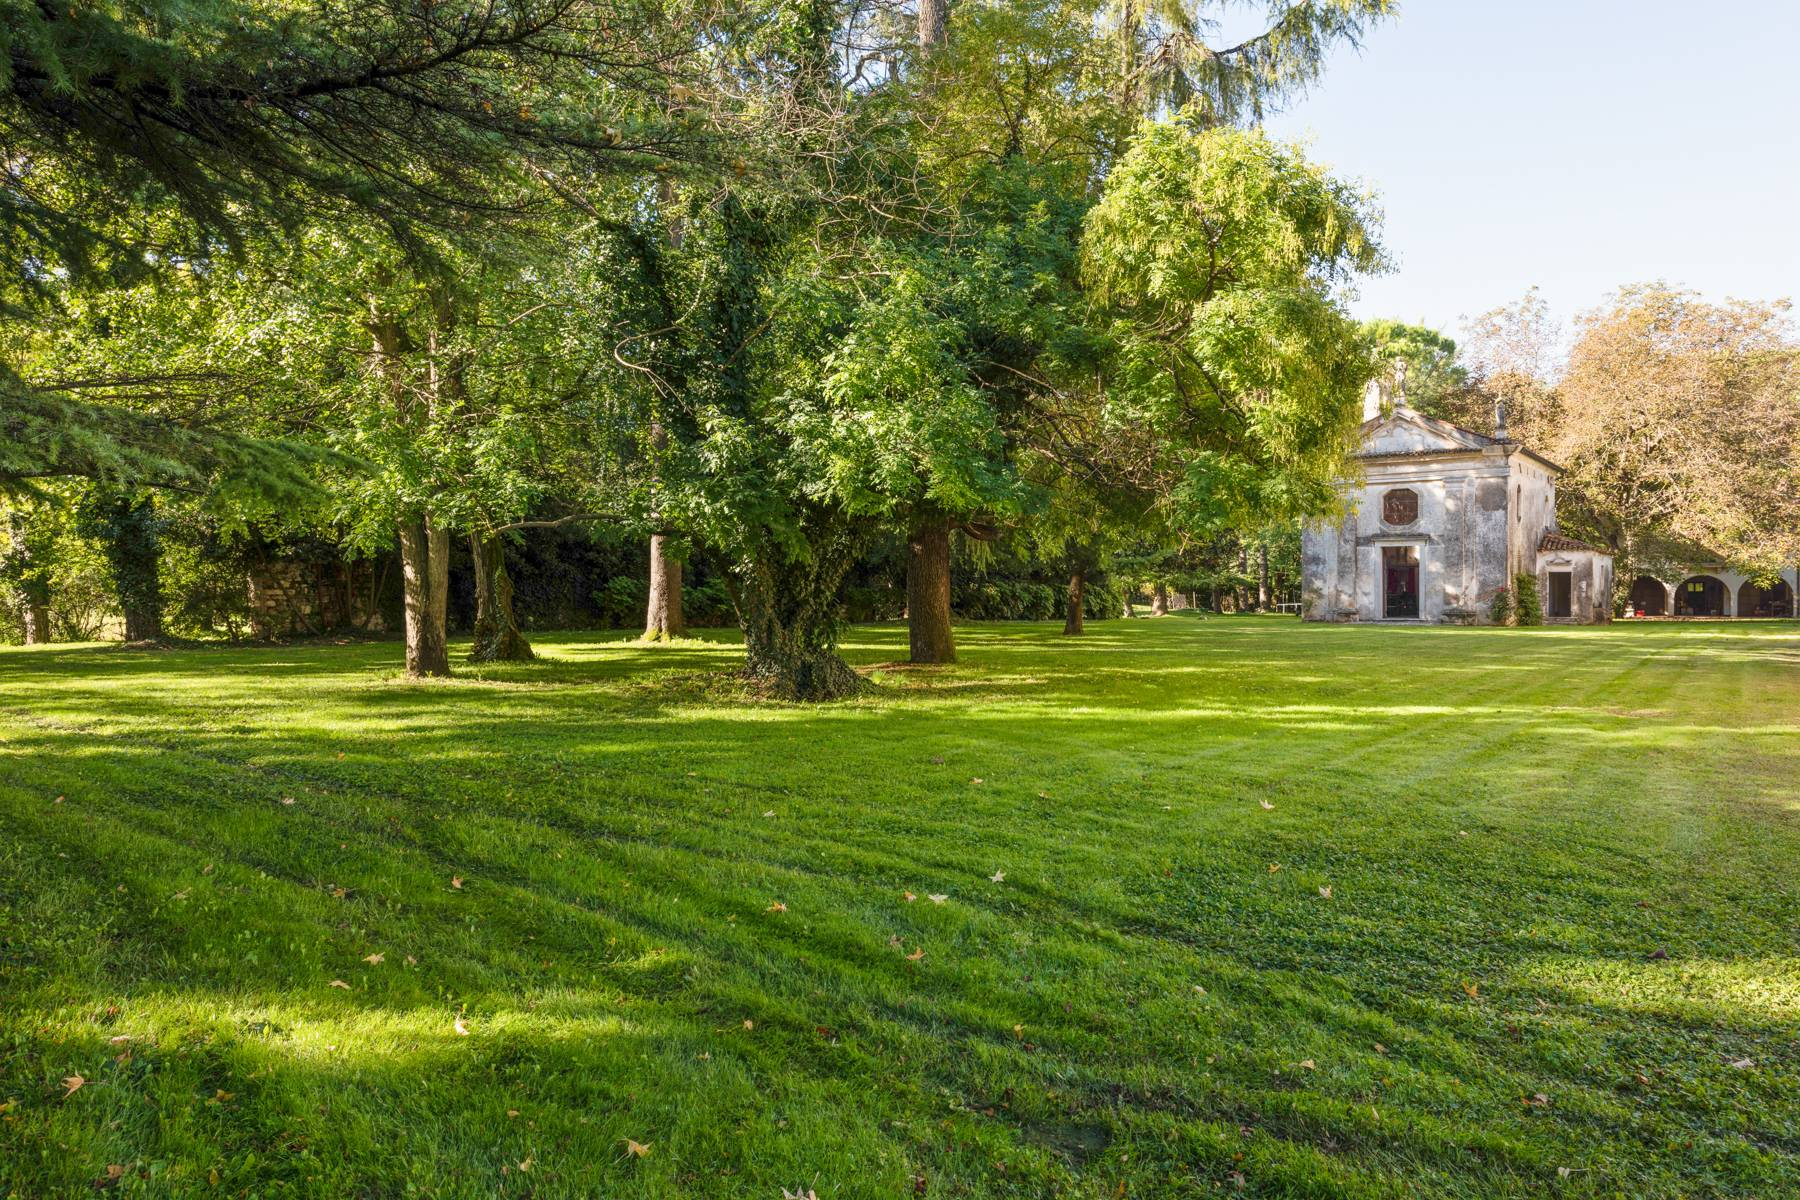 Stunning 18th century villa with 45 hectares of land - 20